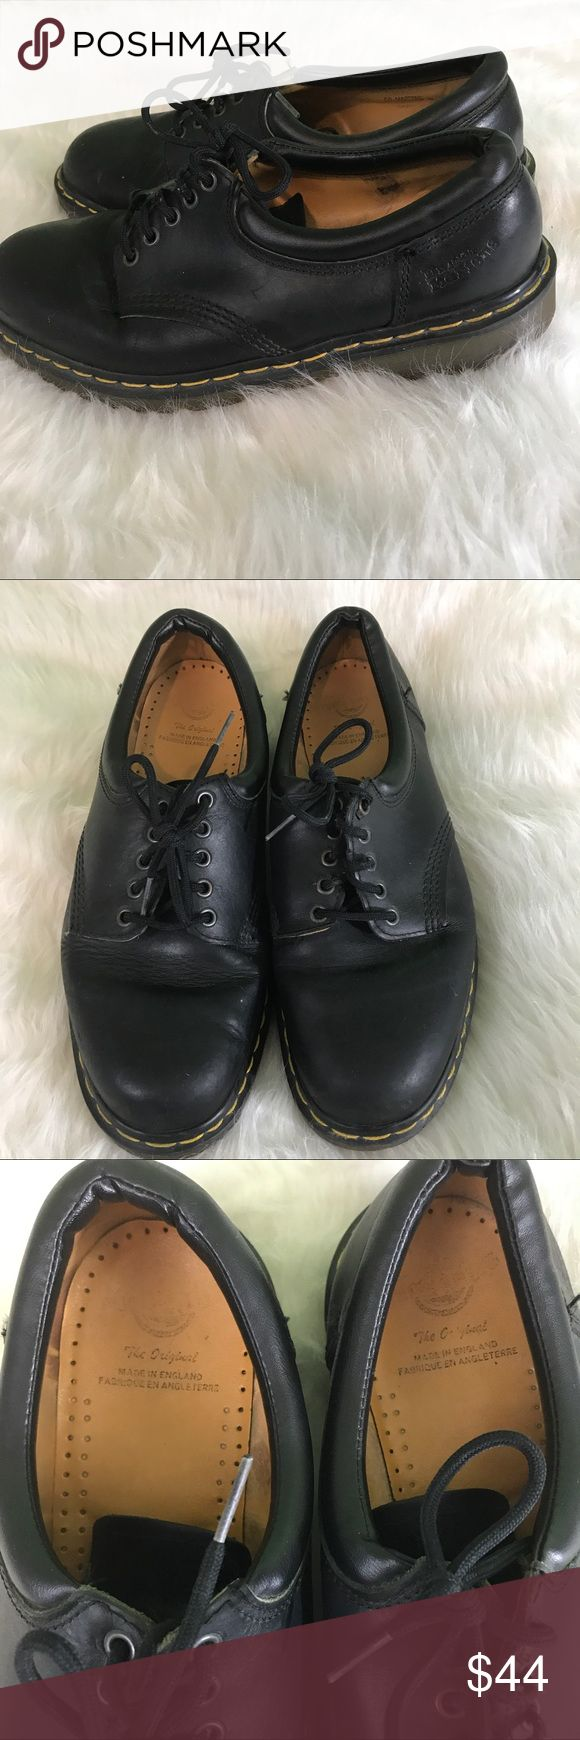 Dr. martens 5 hole men's size 10 oxfords black Made in England men's size 10 Dr. Martens 5 eye /hole Oxford shoes in black. Previously owned- see photos for condition Dr. Martens Shoes Oxfords & Derbys